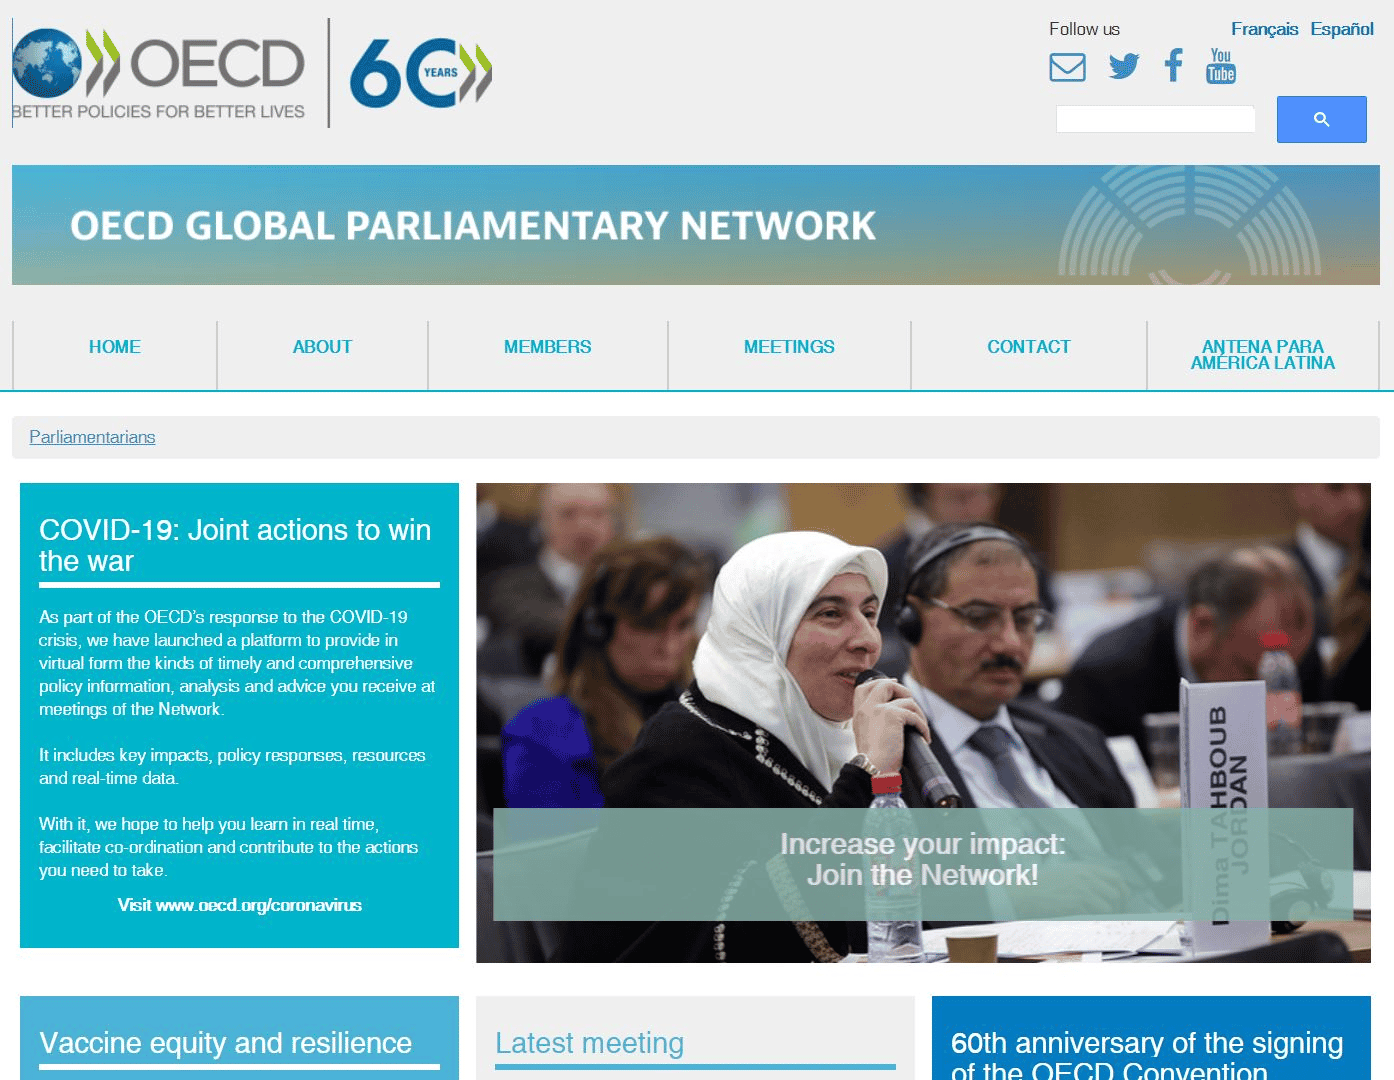 Find out more about theOECD's Global Parliamentary Network